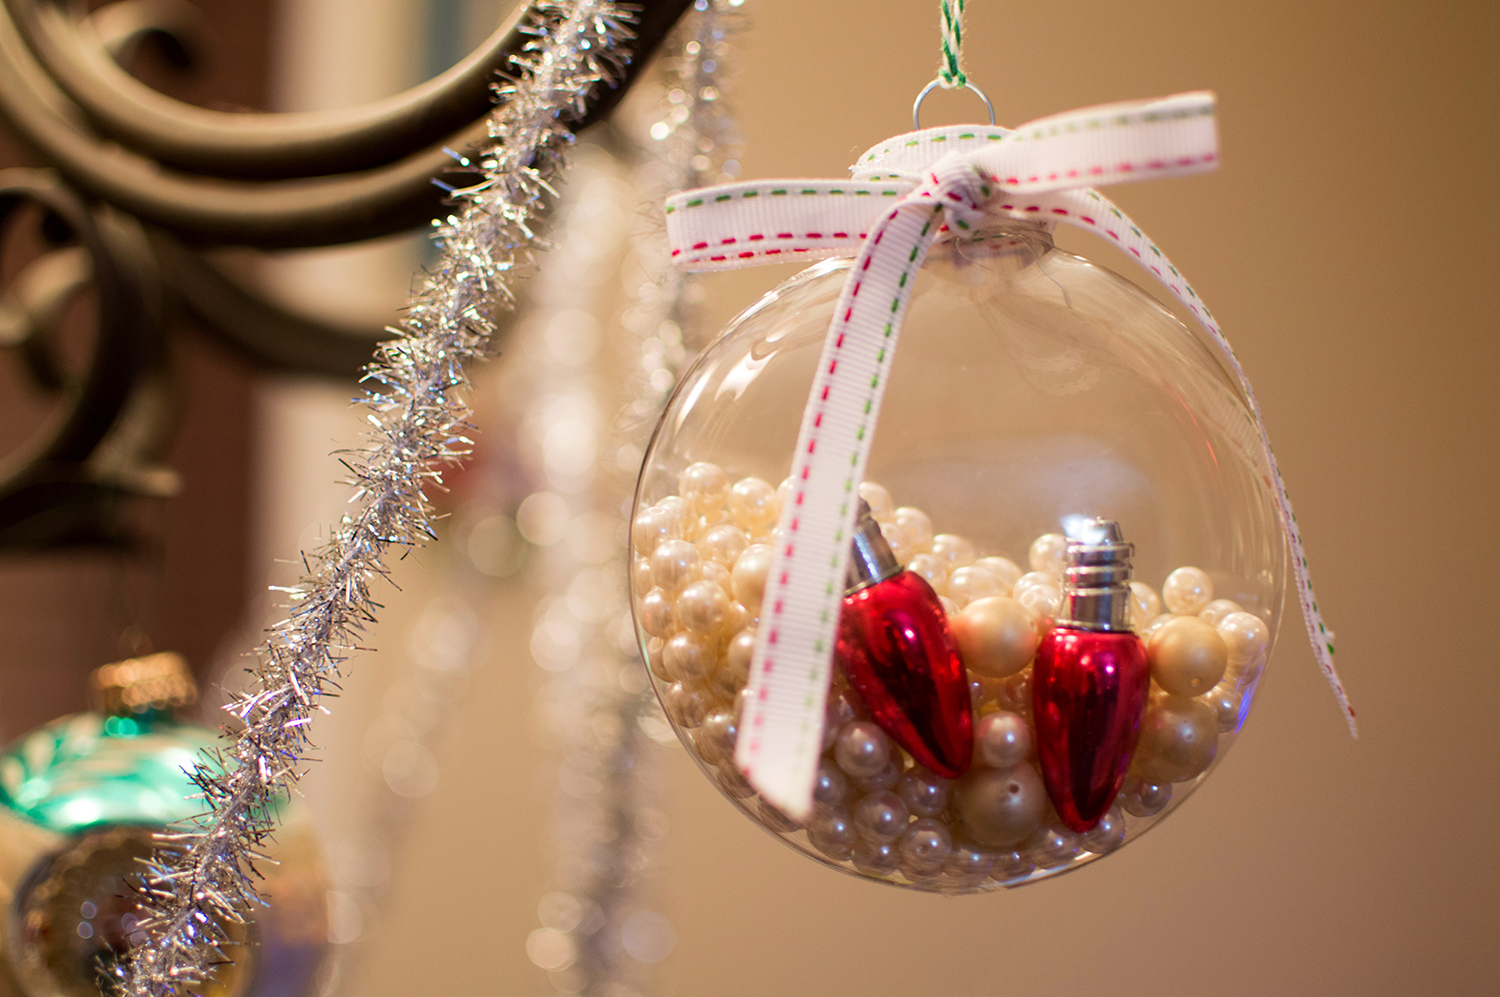 Easy diy ornaments 3 easy christmas crafts for the holiday weekend anyone else have a pile of broken jewelry you cant make yourself throw away in mine has sat a pile of old fake pearls and these broken light bulb earrings solutioingenieria Gallery